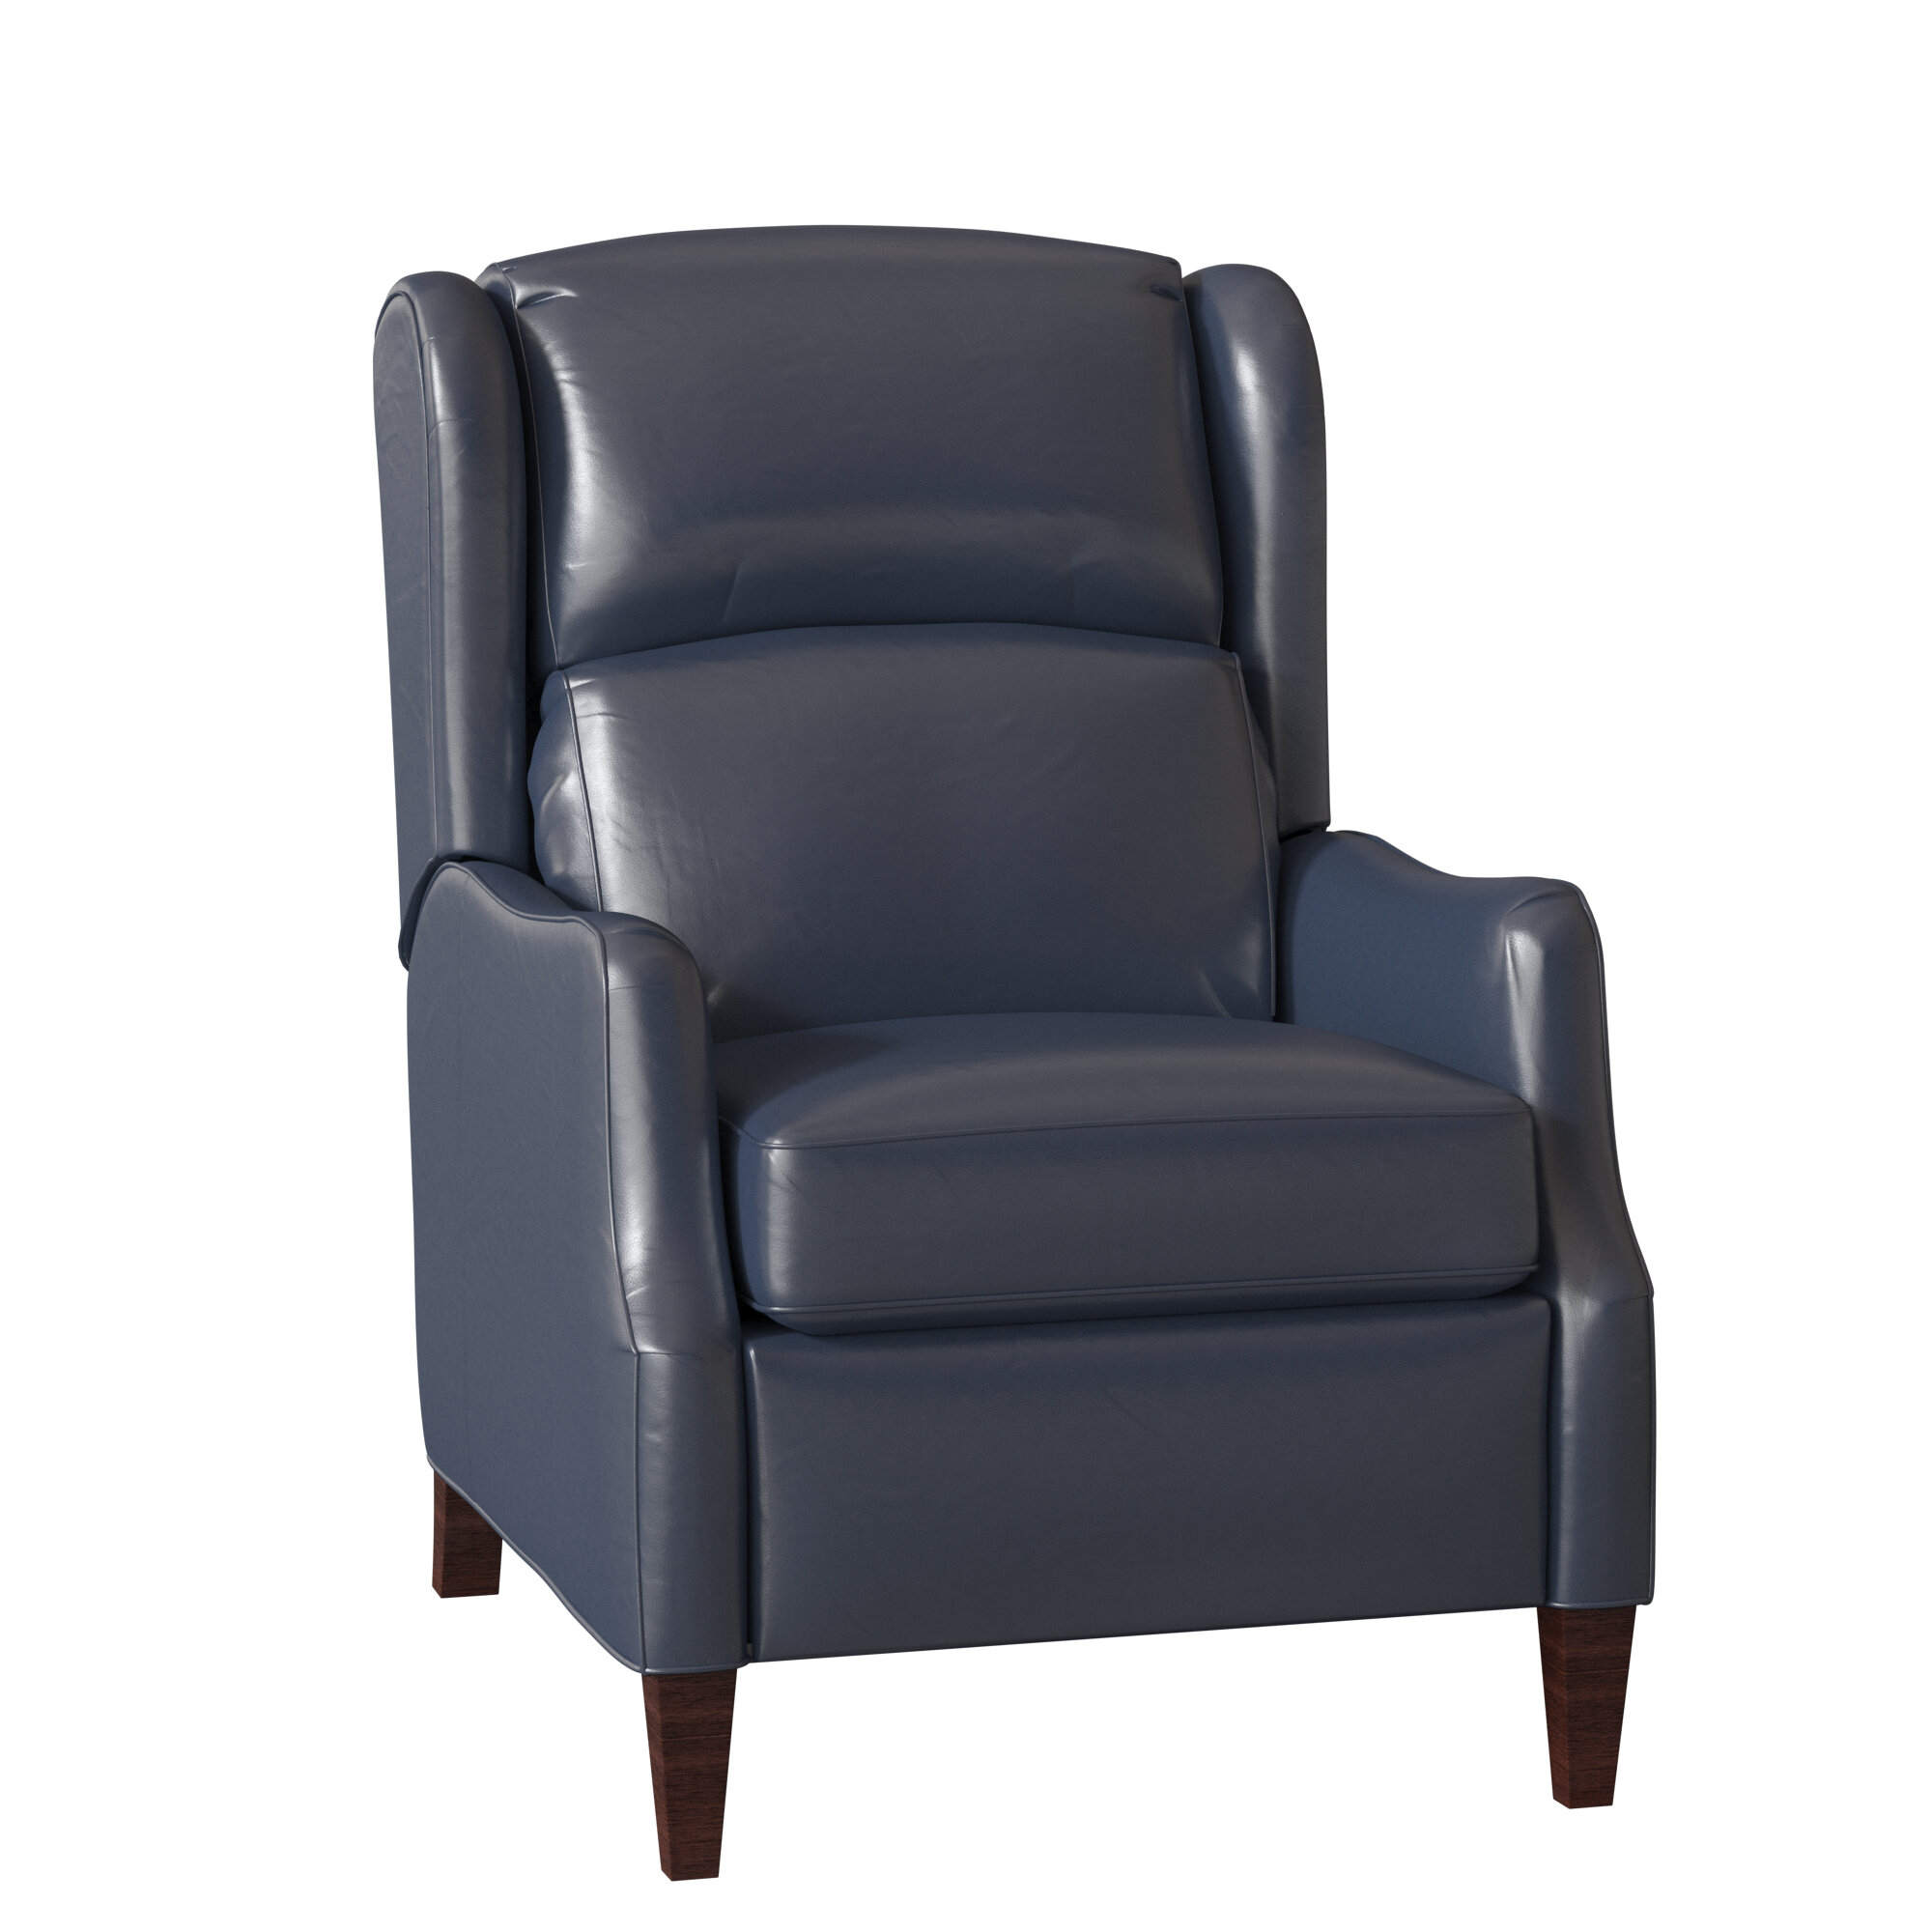 Wingback Accent Chairs You'Ll Love In 2021 | Wayfair (View 7 of 15)